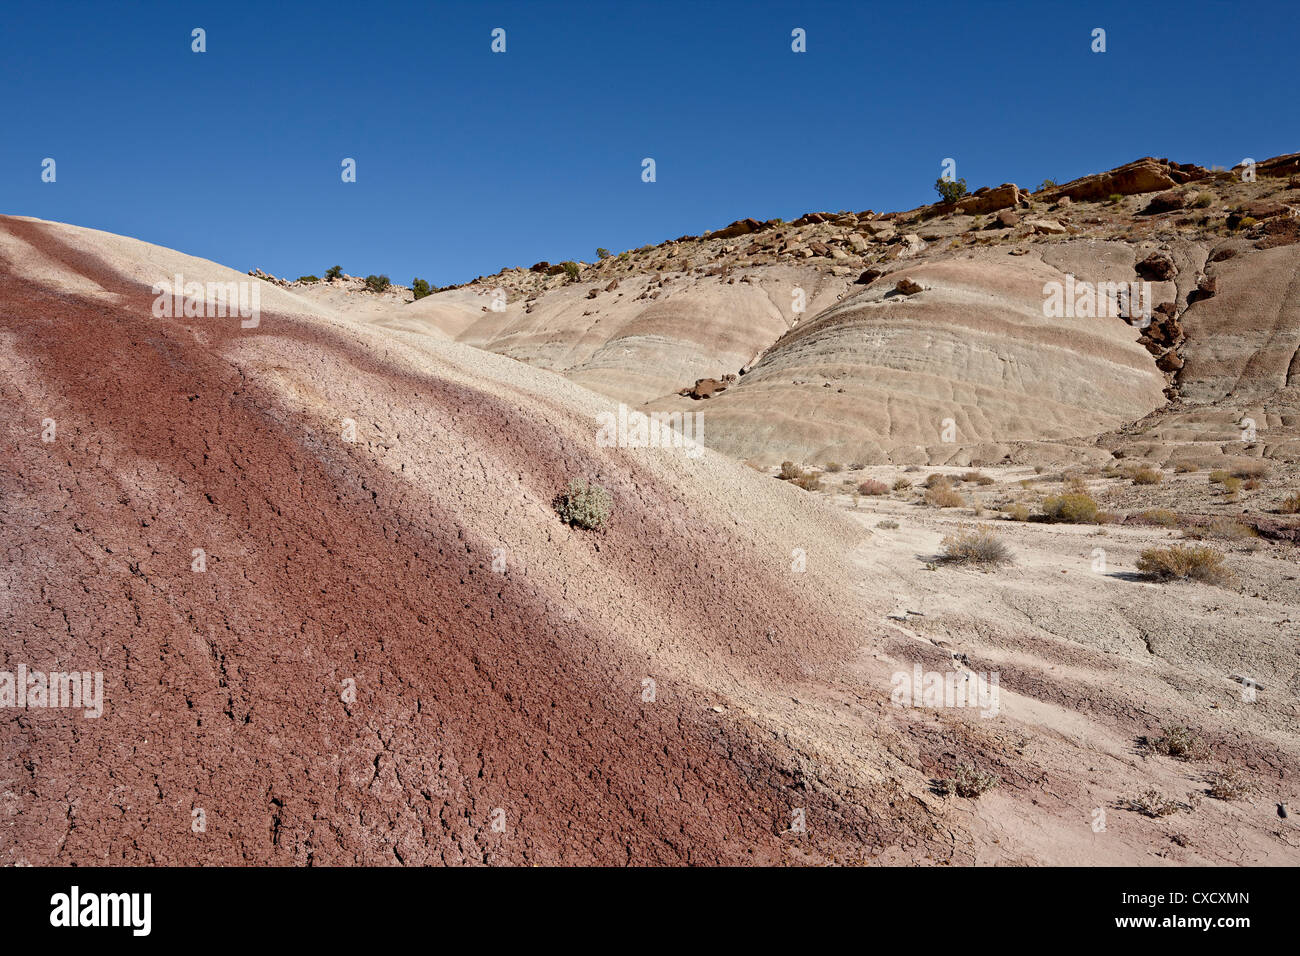 Badlands with maroon color, Capitol Reef National Park, Utah, United States of America, North America - Stock Image